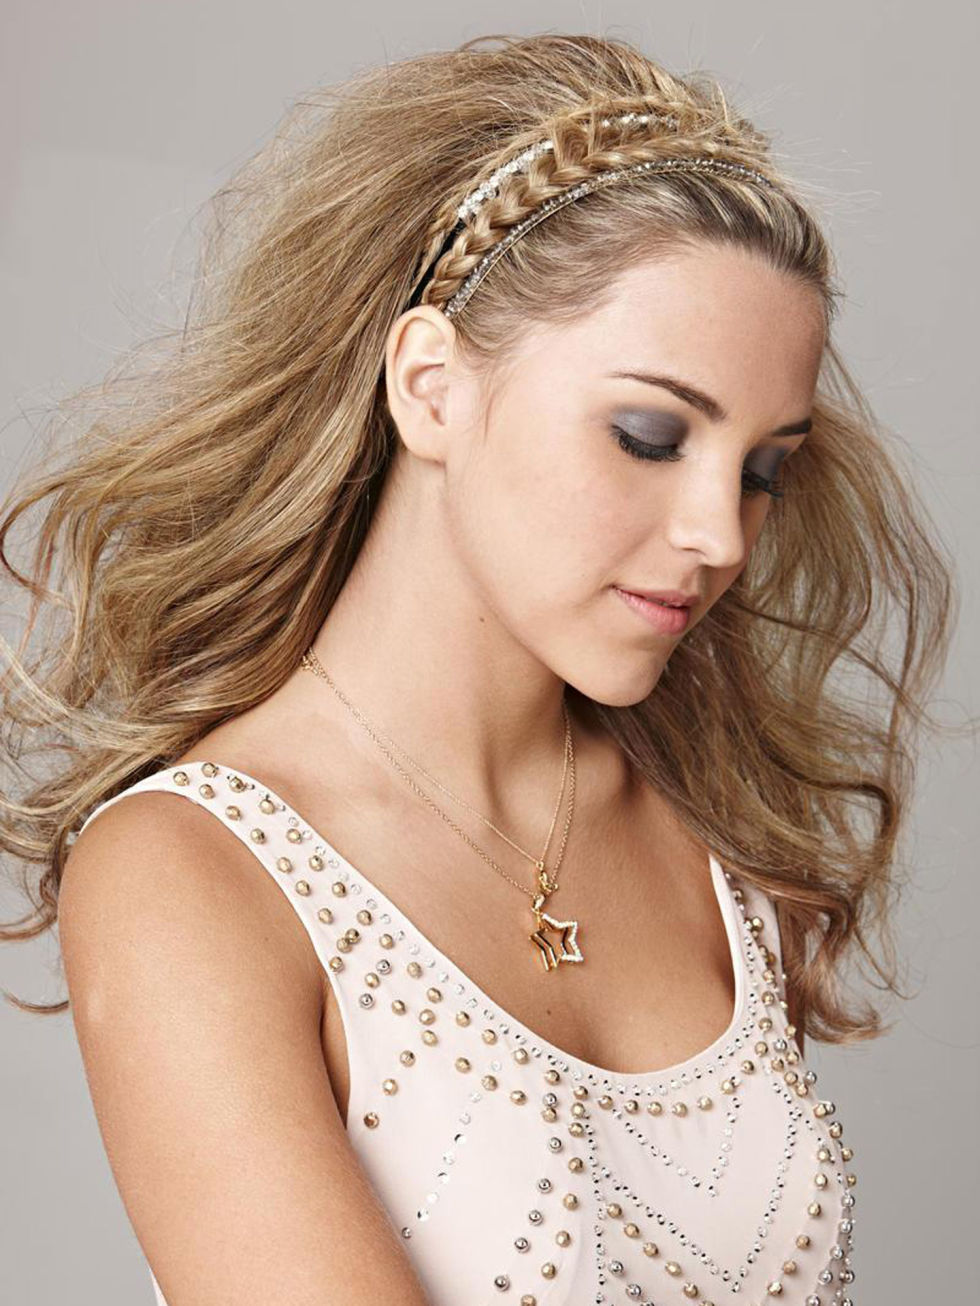 Incredible 16 Epic New Year39S Eve Hairstyle Ideas Hair Inspiration For Nye 2017 Short Hairstyles Gunalazisus